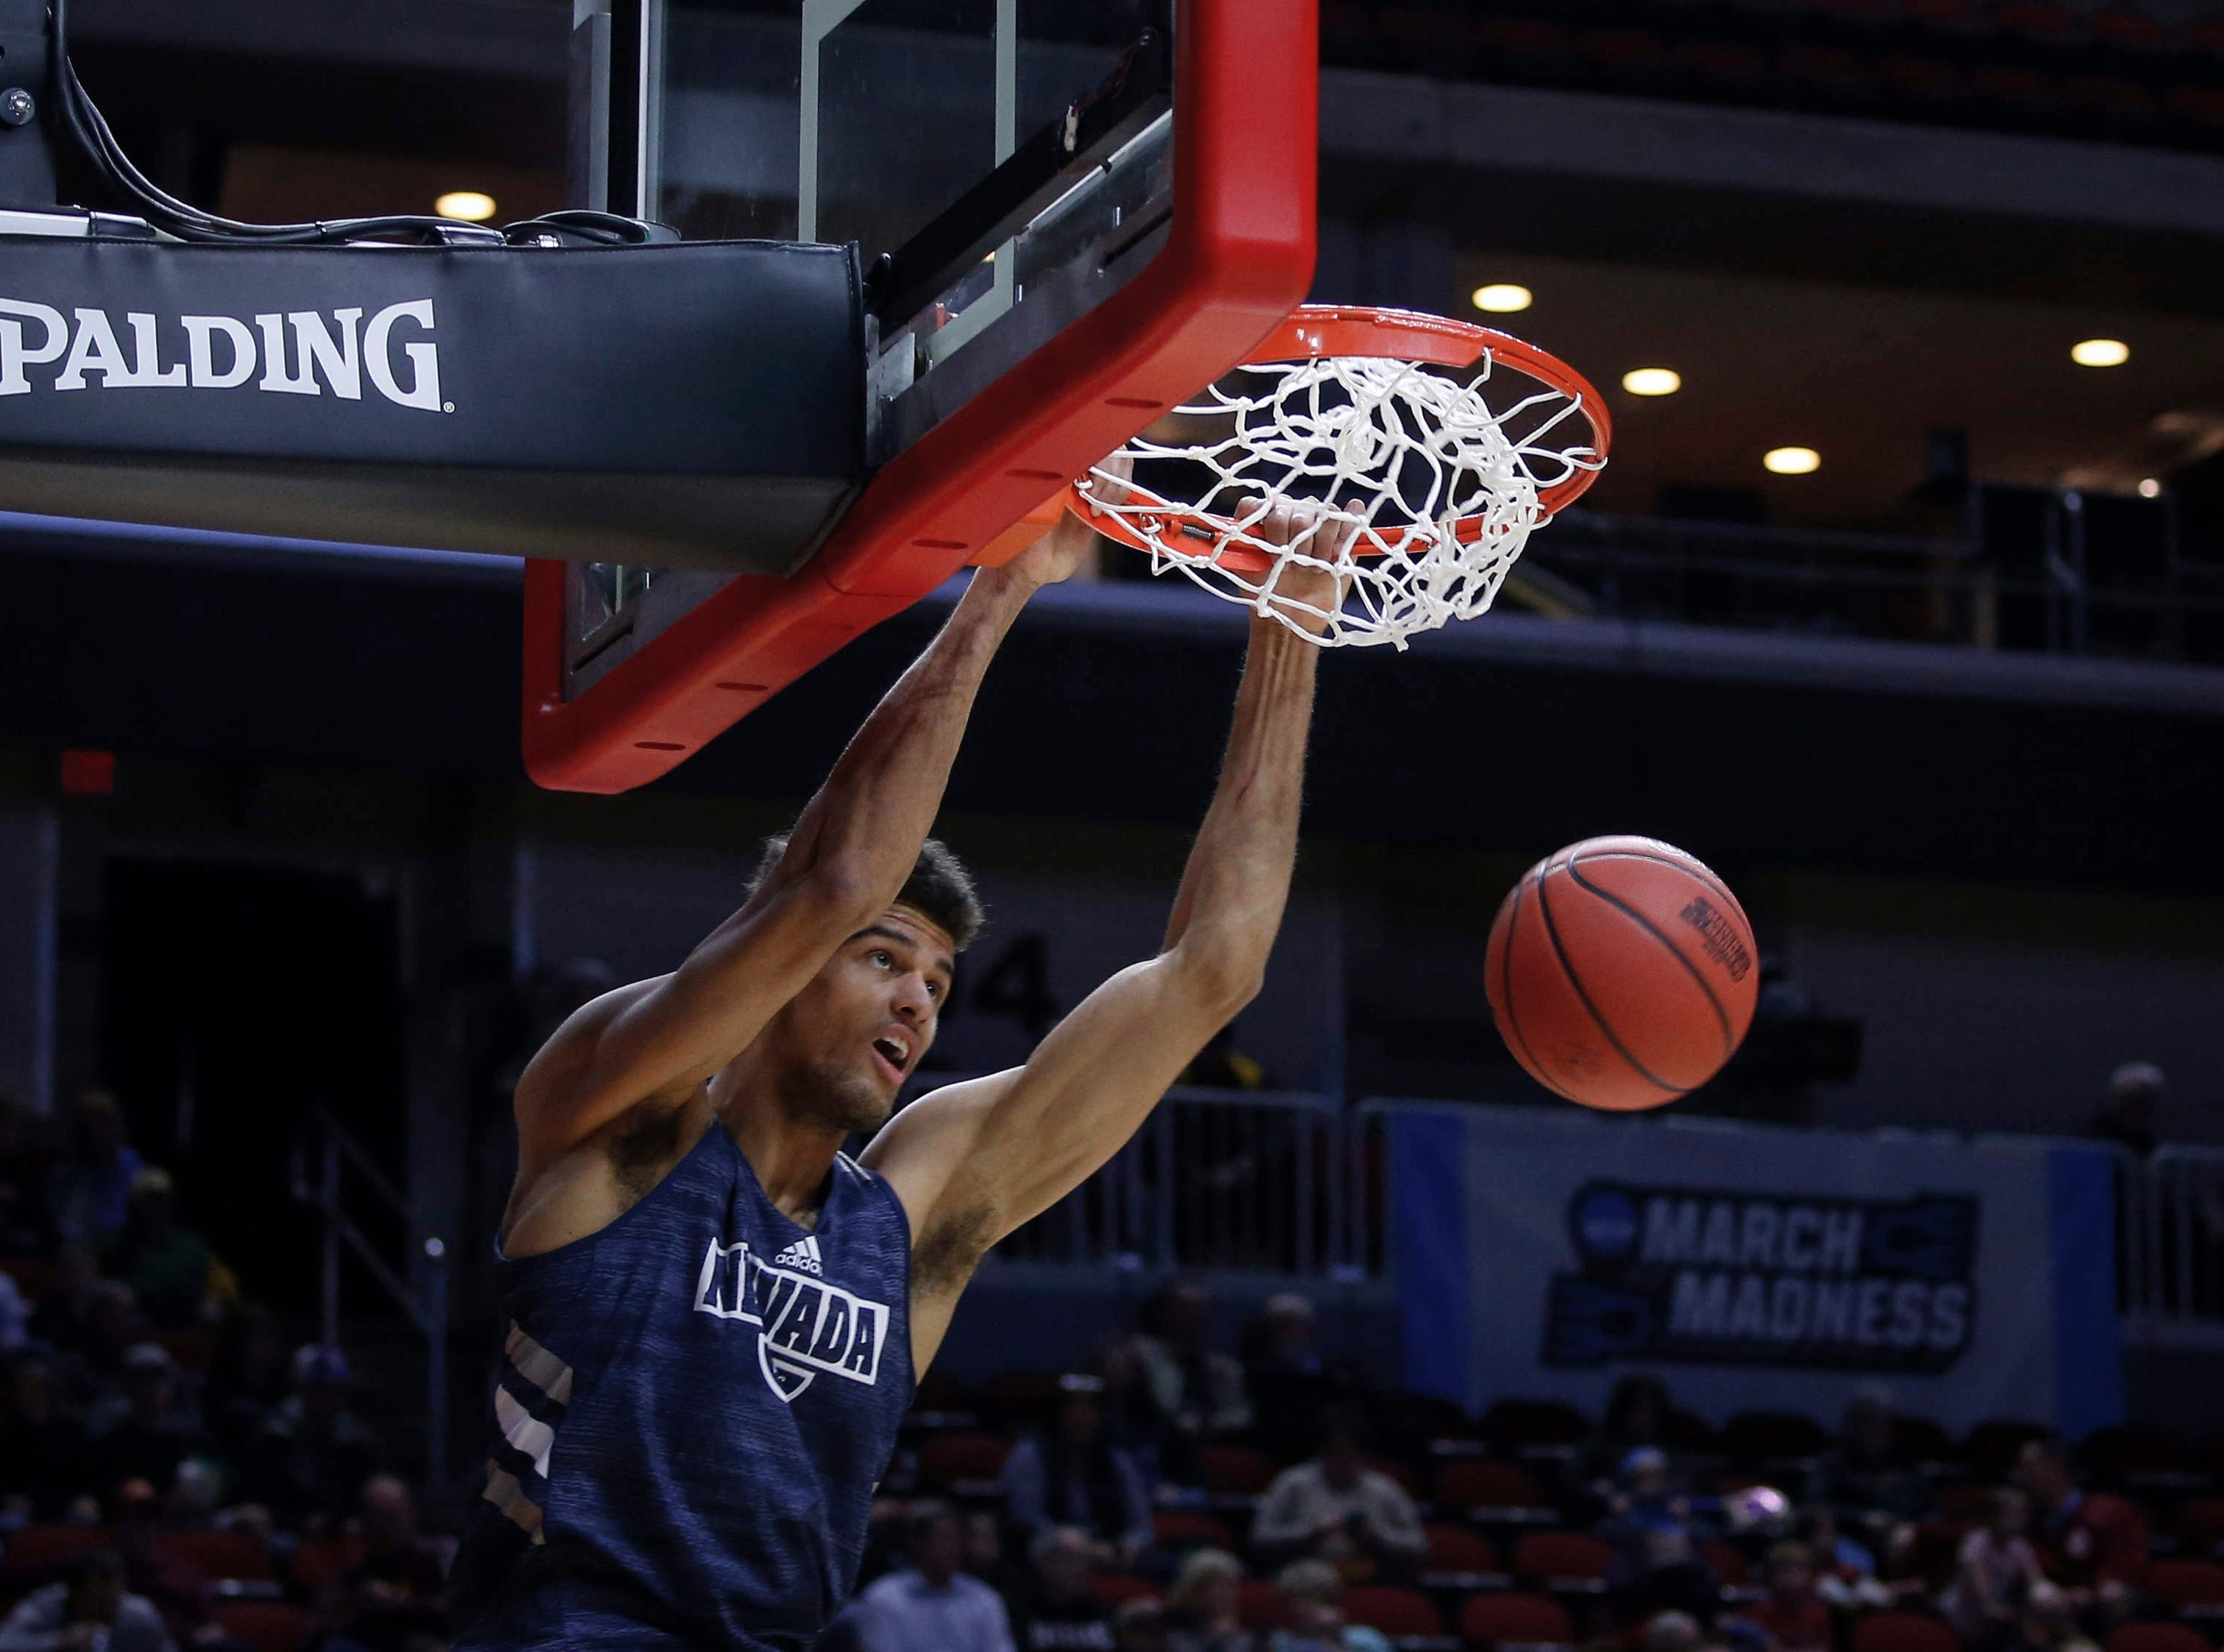 Nevada senior Trey Porter dunks the ball during open practice on Wednesday, March 20, 2019, at Wells Fargo Arena in Des Moines, Iowa.